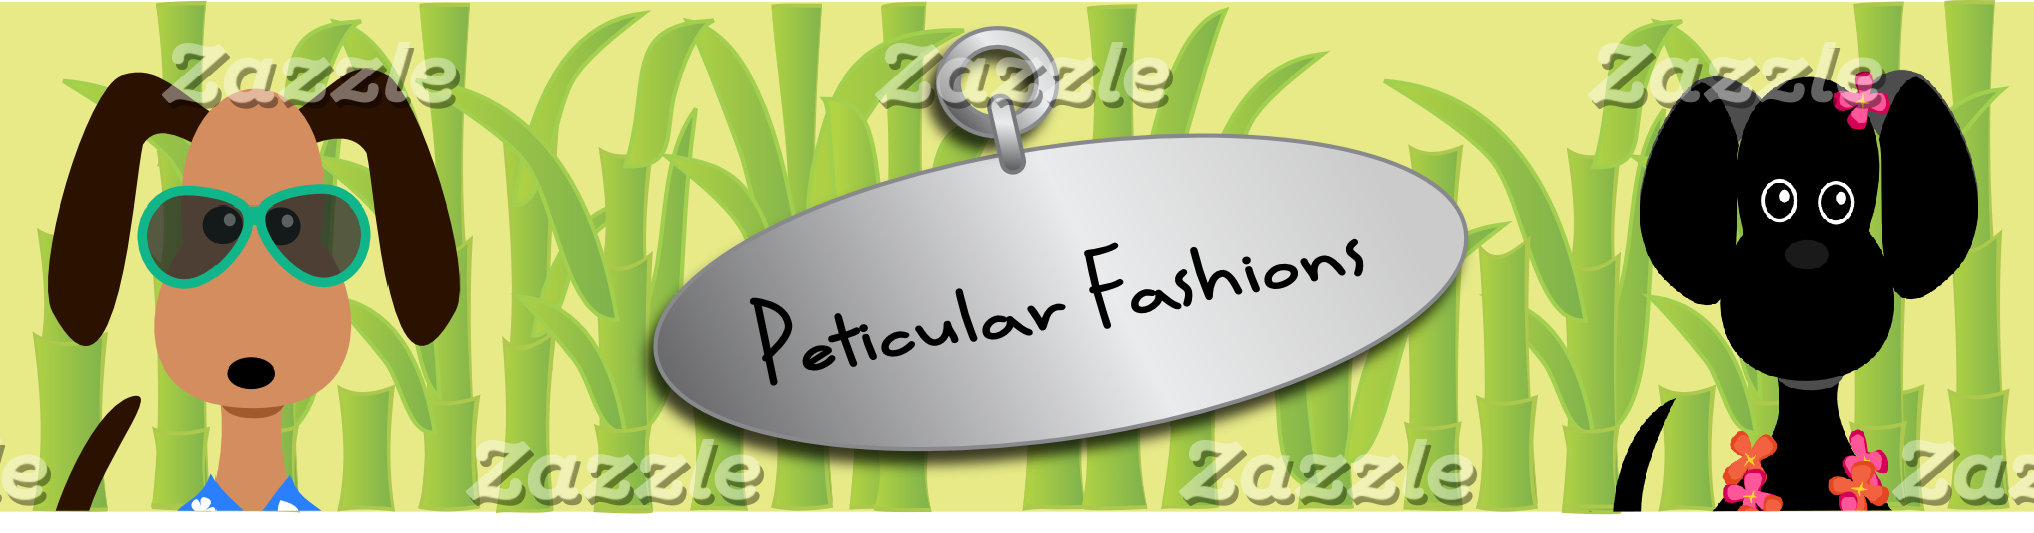 Peticular Fashions Opening Day Banner